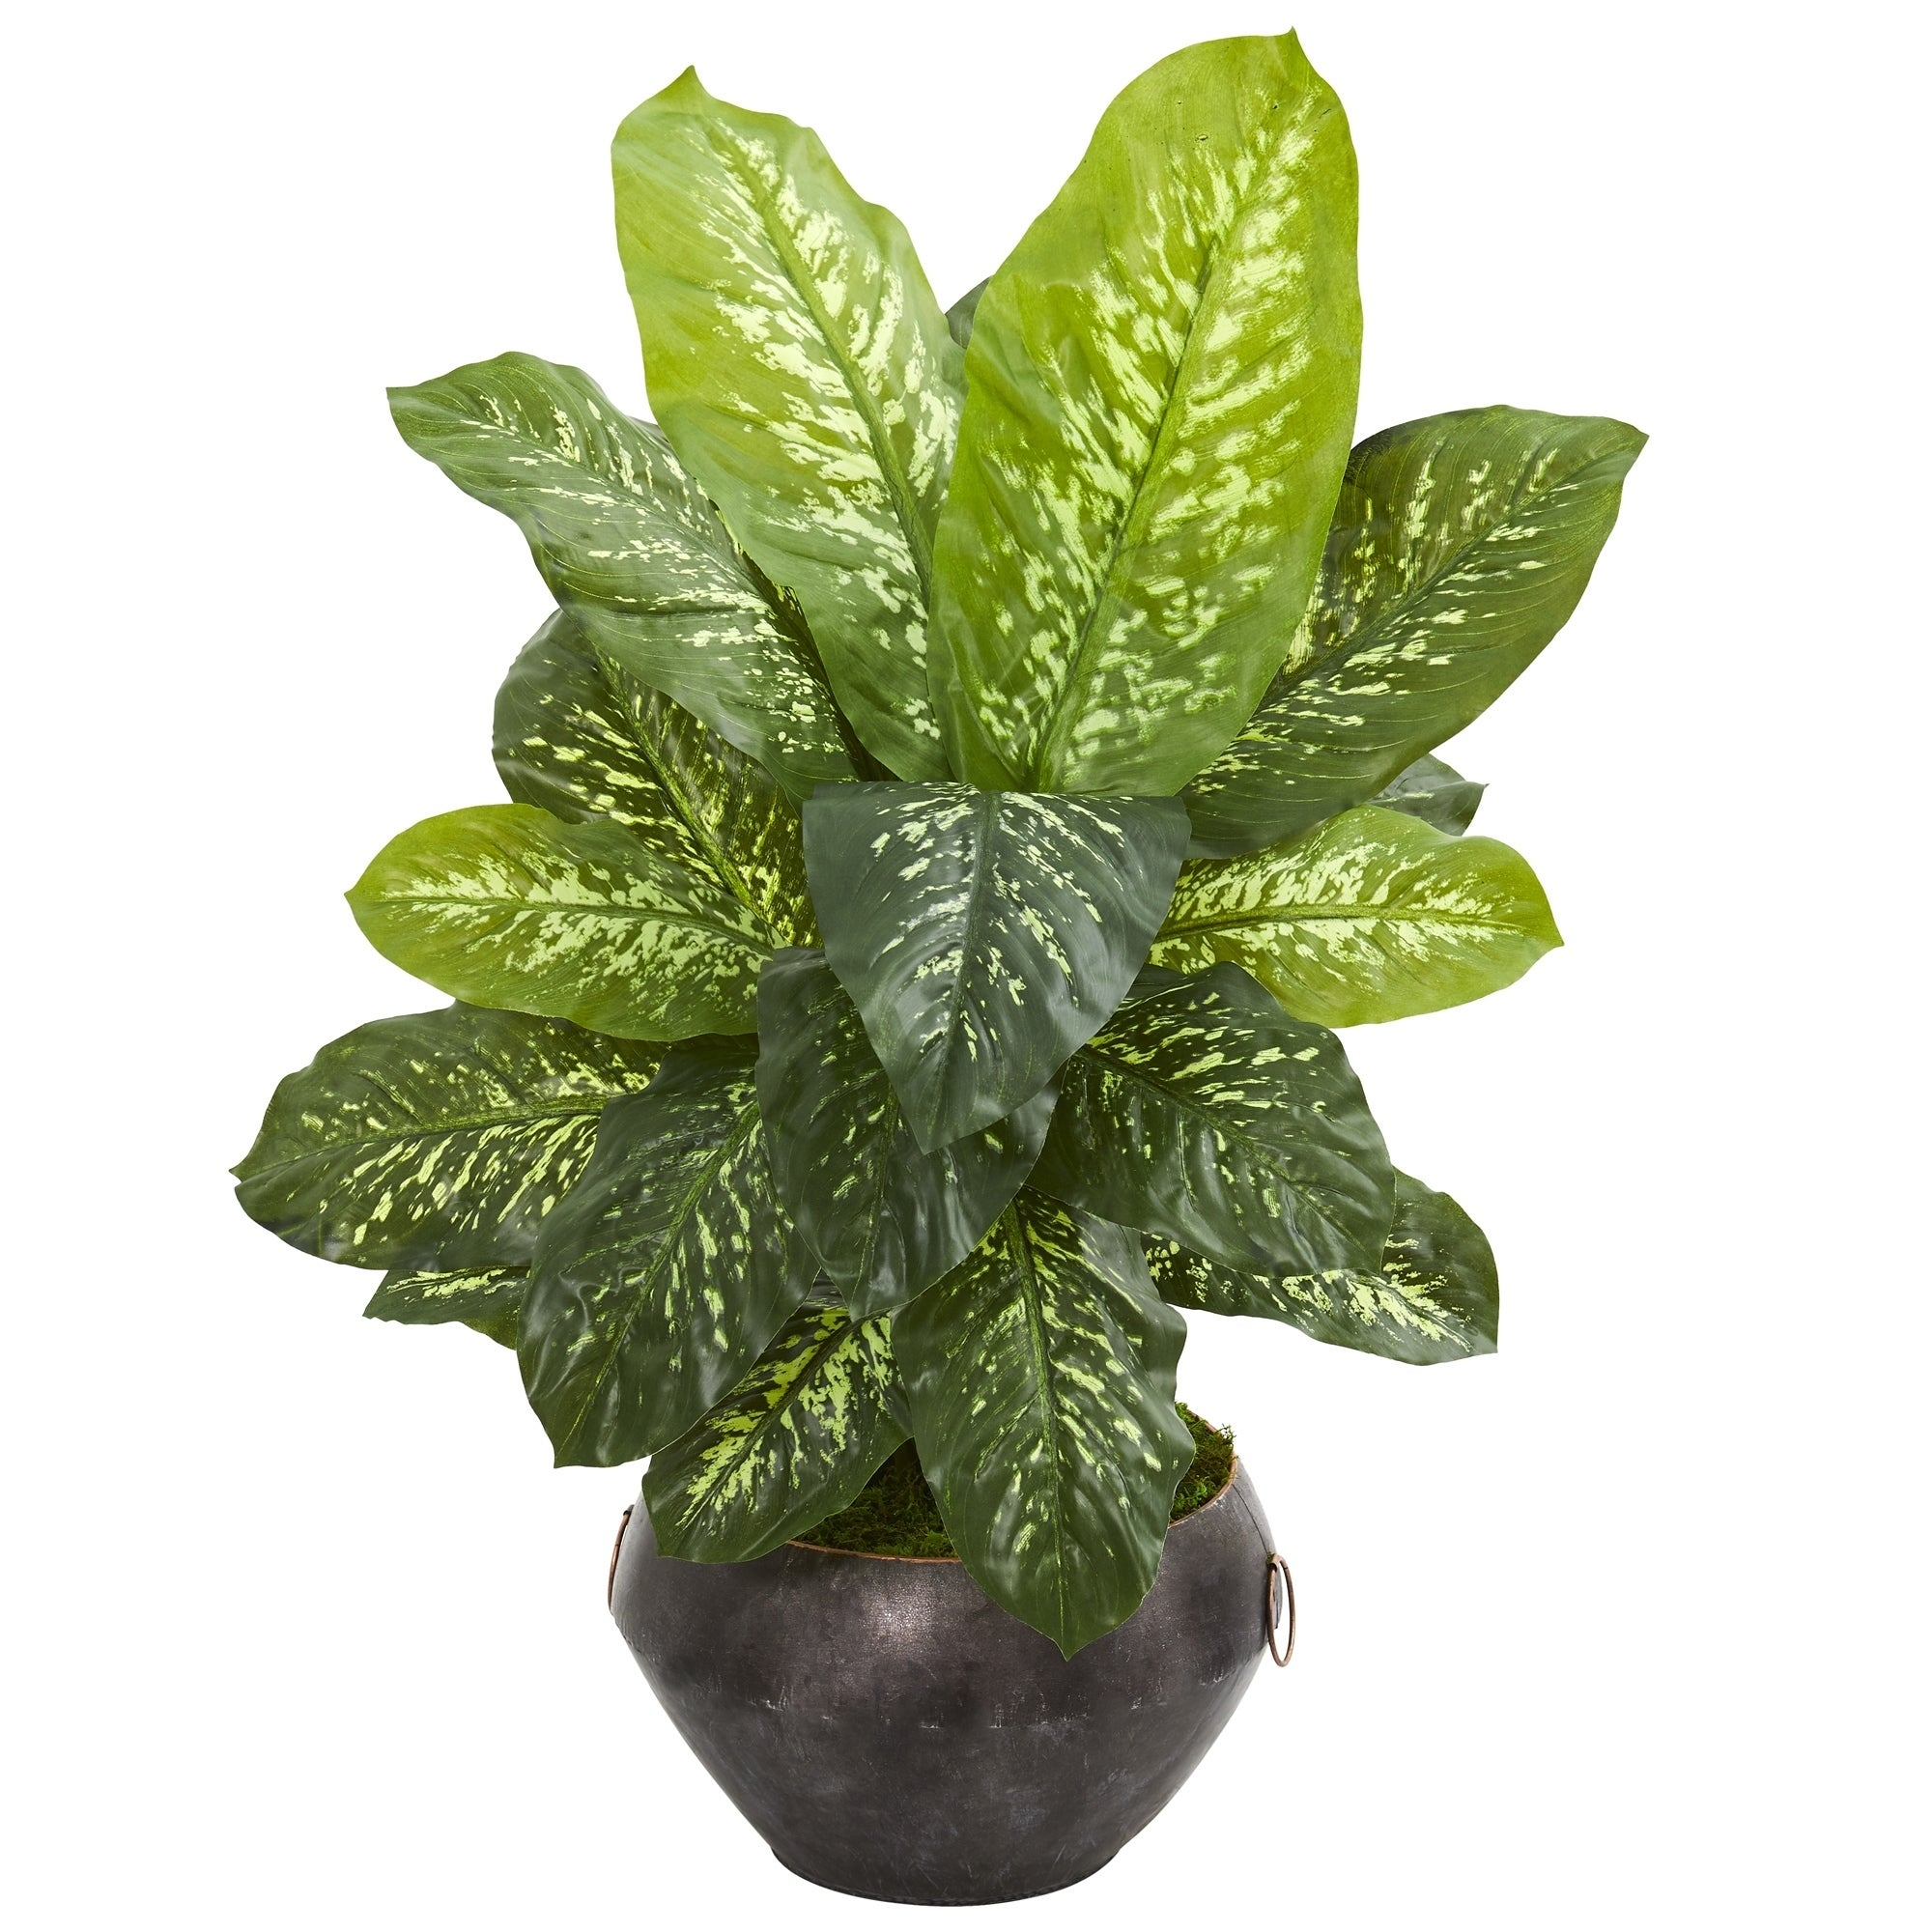 35 Dieffenbachia Artificial Plant in Metal Bowl (Real Touch)